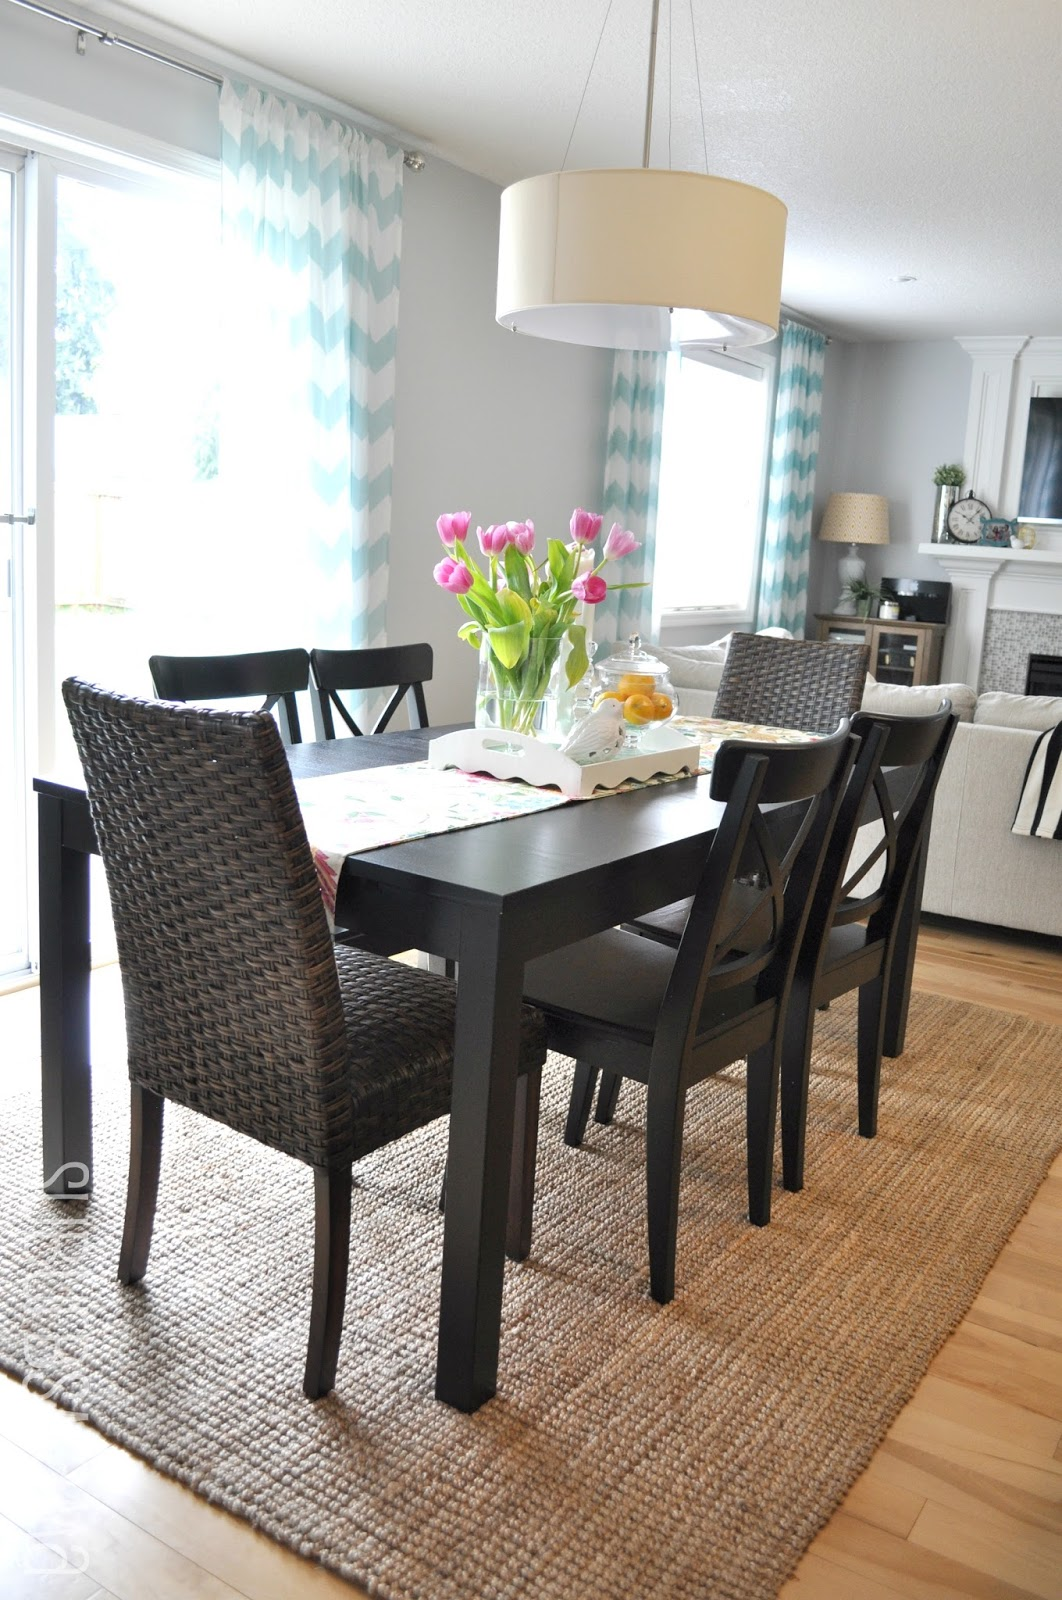 suburbs mama dining area third times the charm. Black Bedroom Furniture Sets. Home Design Ideas